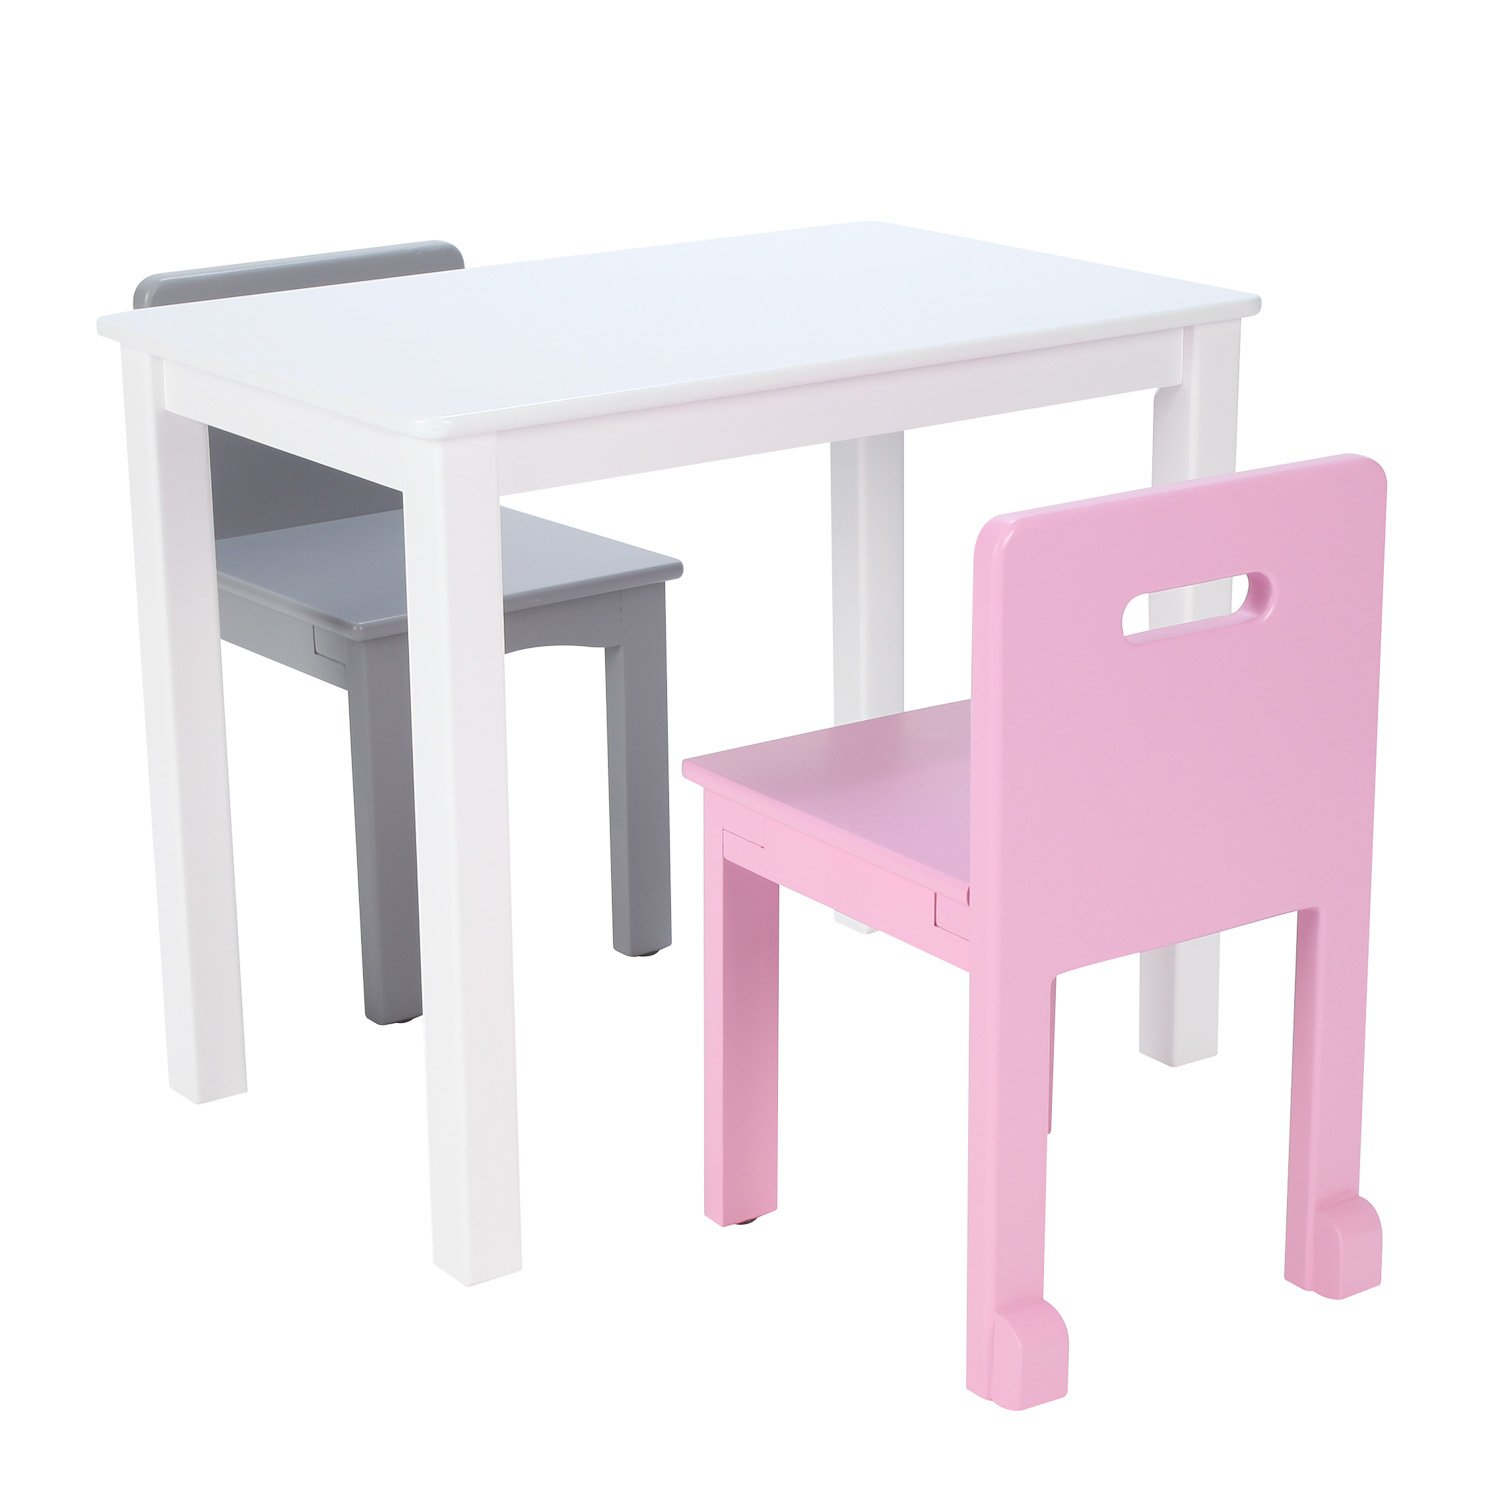 Max & Lily White Wood Kid and Toddler Rectangular Table +  Chairs (Pink, Grey)